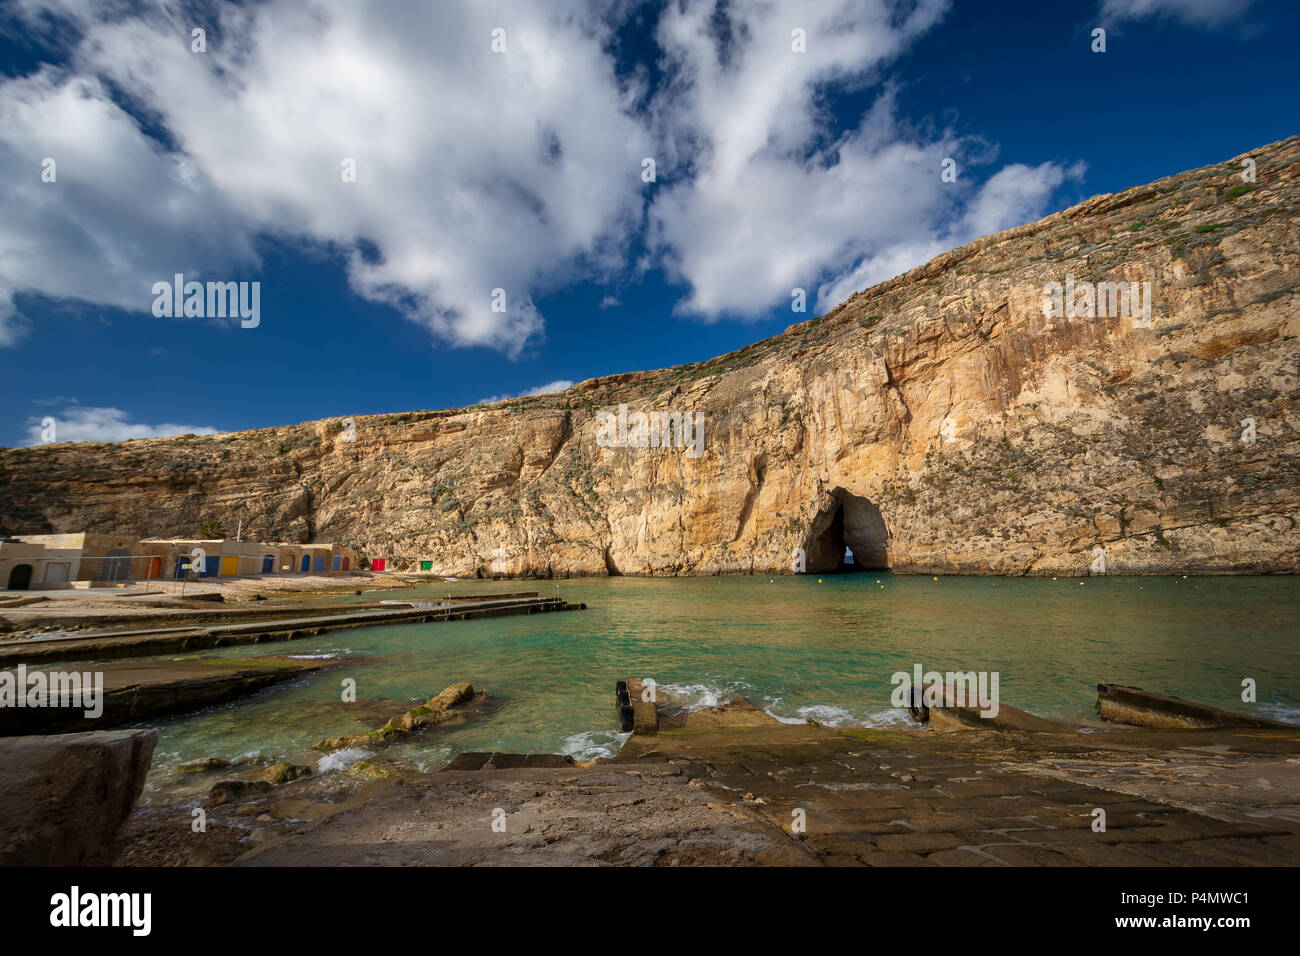 Inland Sea, Maltese famous landmark. Island of Gozo, Malta. - Stock Image